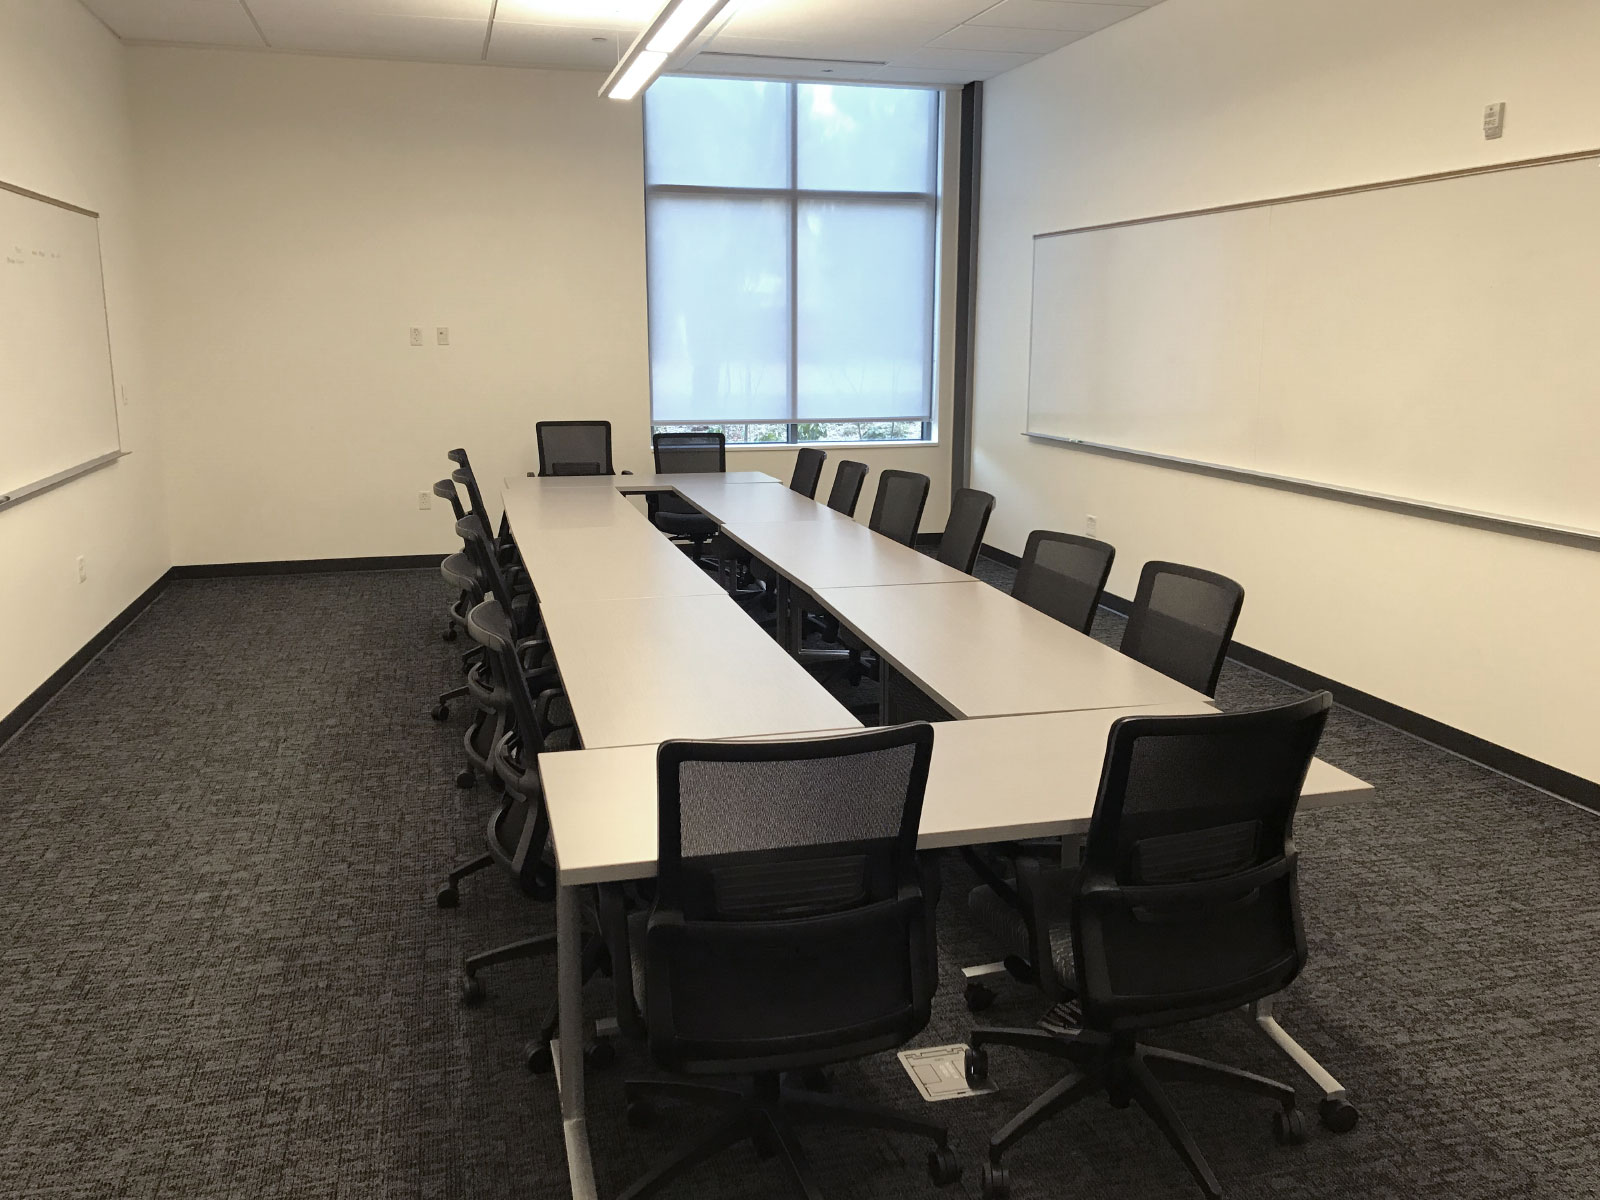 Two rows of chairs and tables in a large Harmony campus conference room